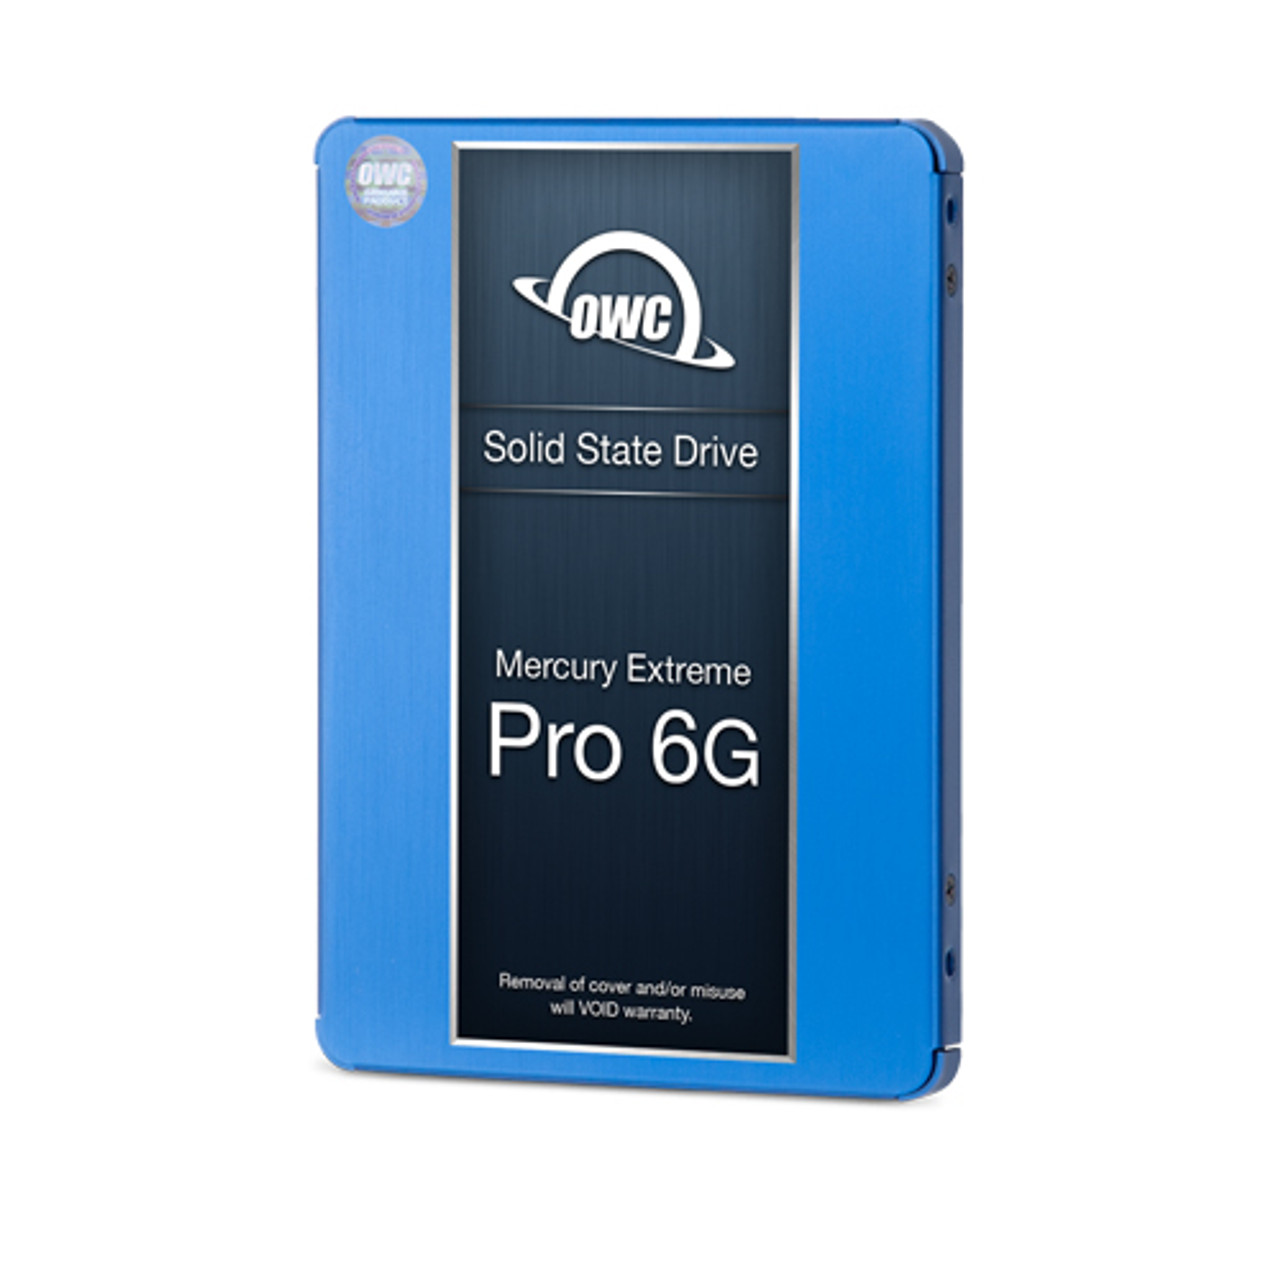 2TB OWC Mercury Extreme Pro 6G SSD and HDD DIY Bundle Kit (for 21.5-inch iMac 2012 and later)